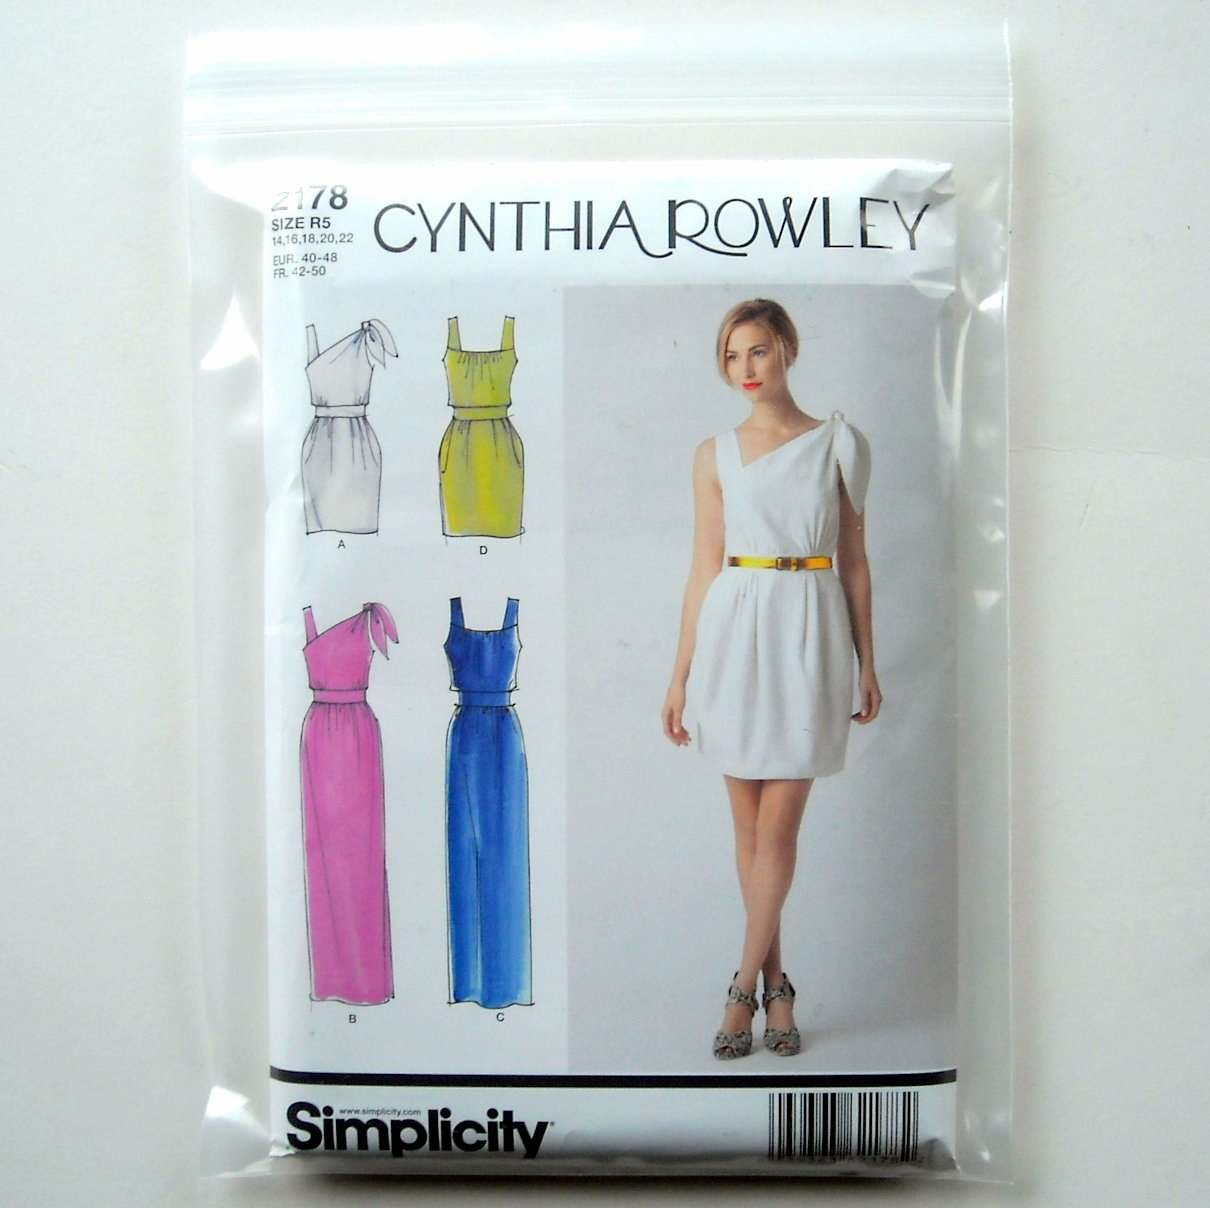 Cynthia Rowley Jewelry Organizer: Misses Dress Two Lengths Cynthia Rowley Simplicity Sewing